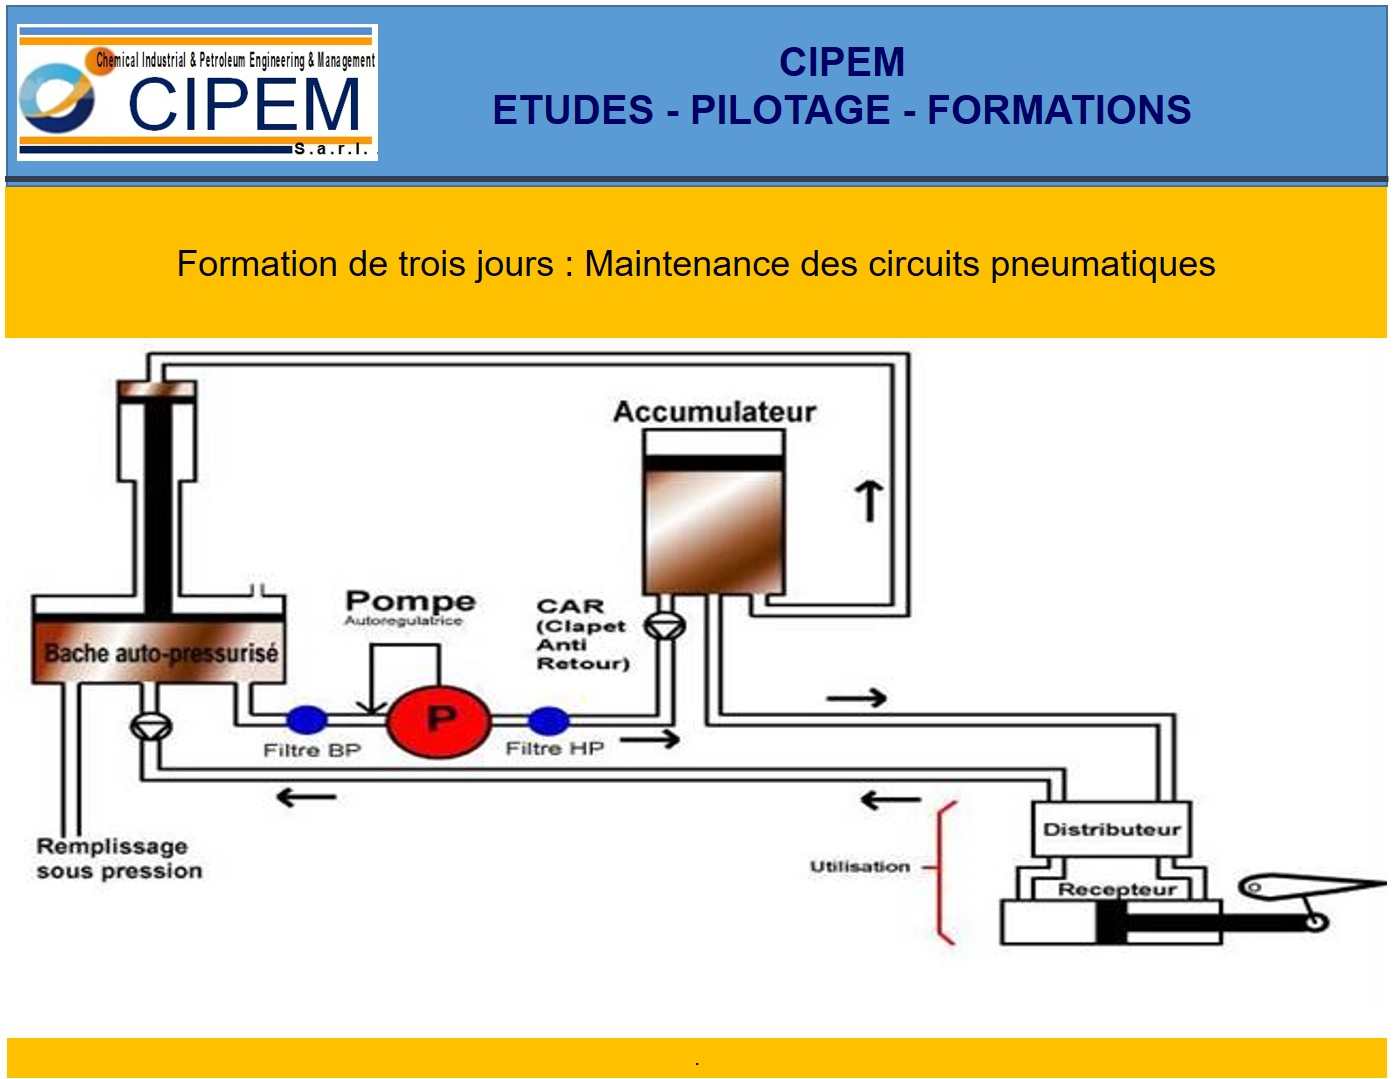 Maintenance des circuits pneumatiques